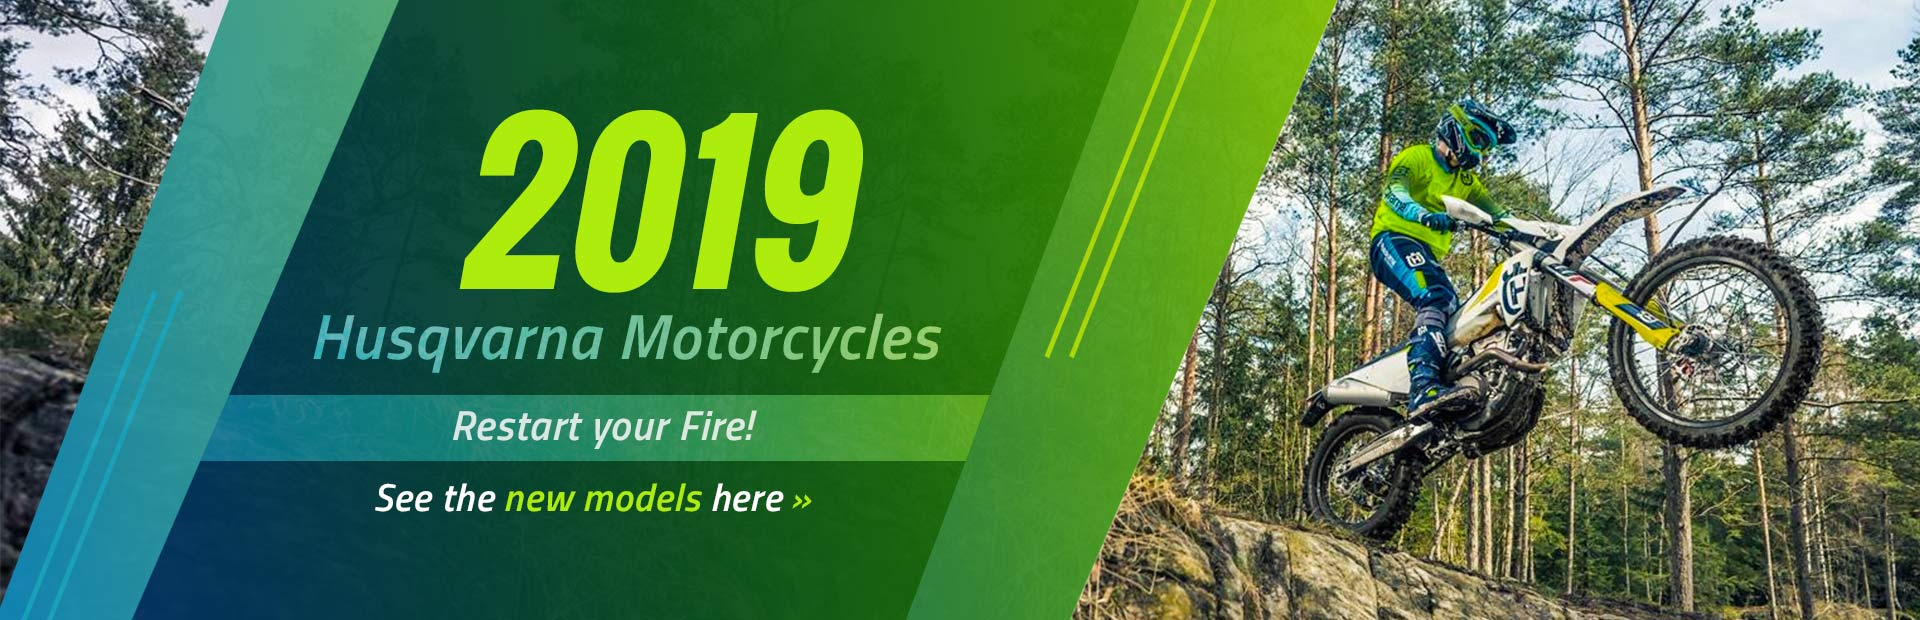 2019 Husqvarna motorcycles: Restart your fire! Click here to view the new models.